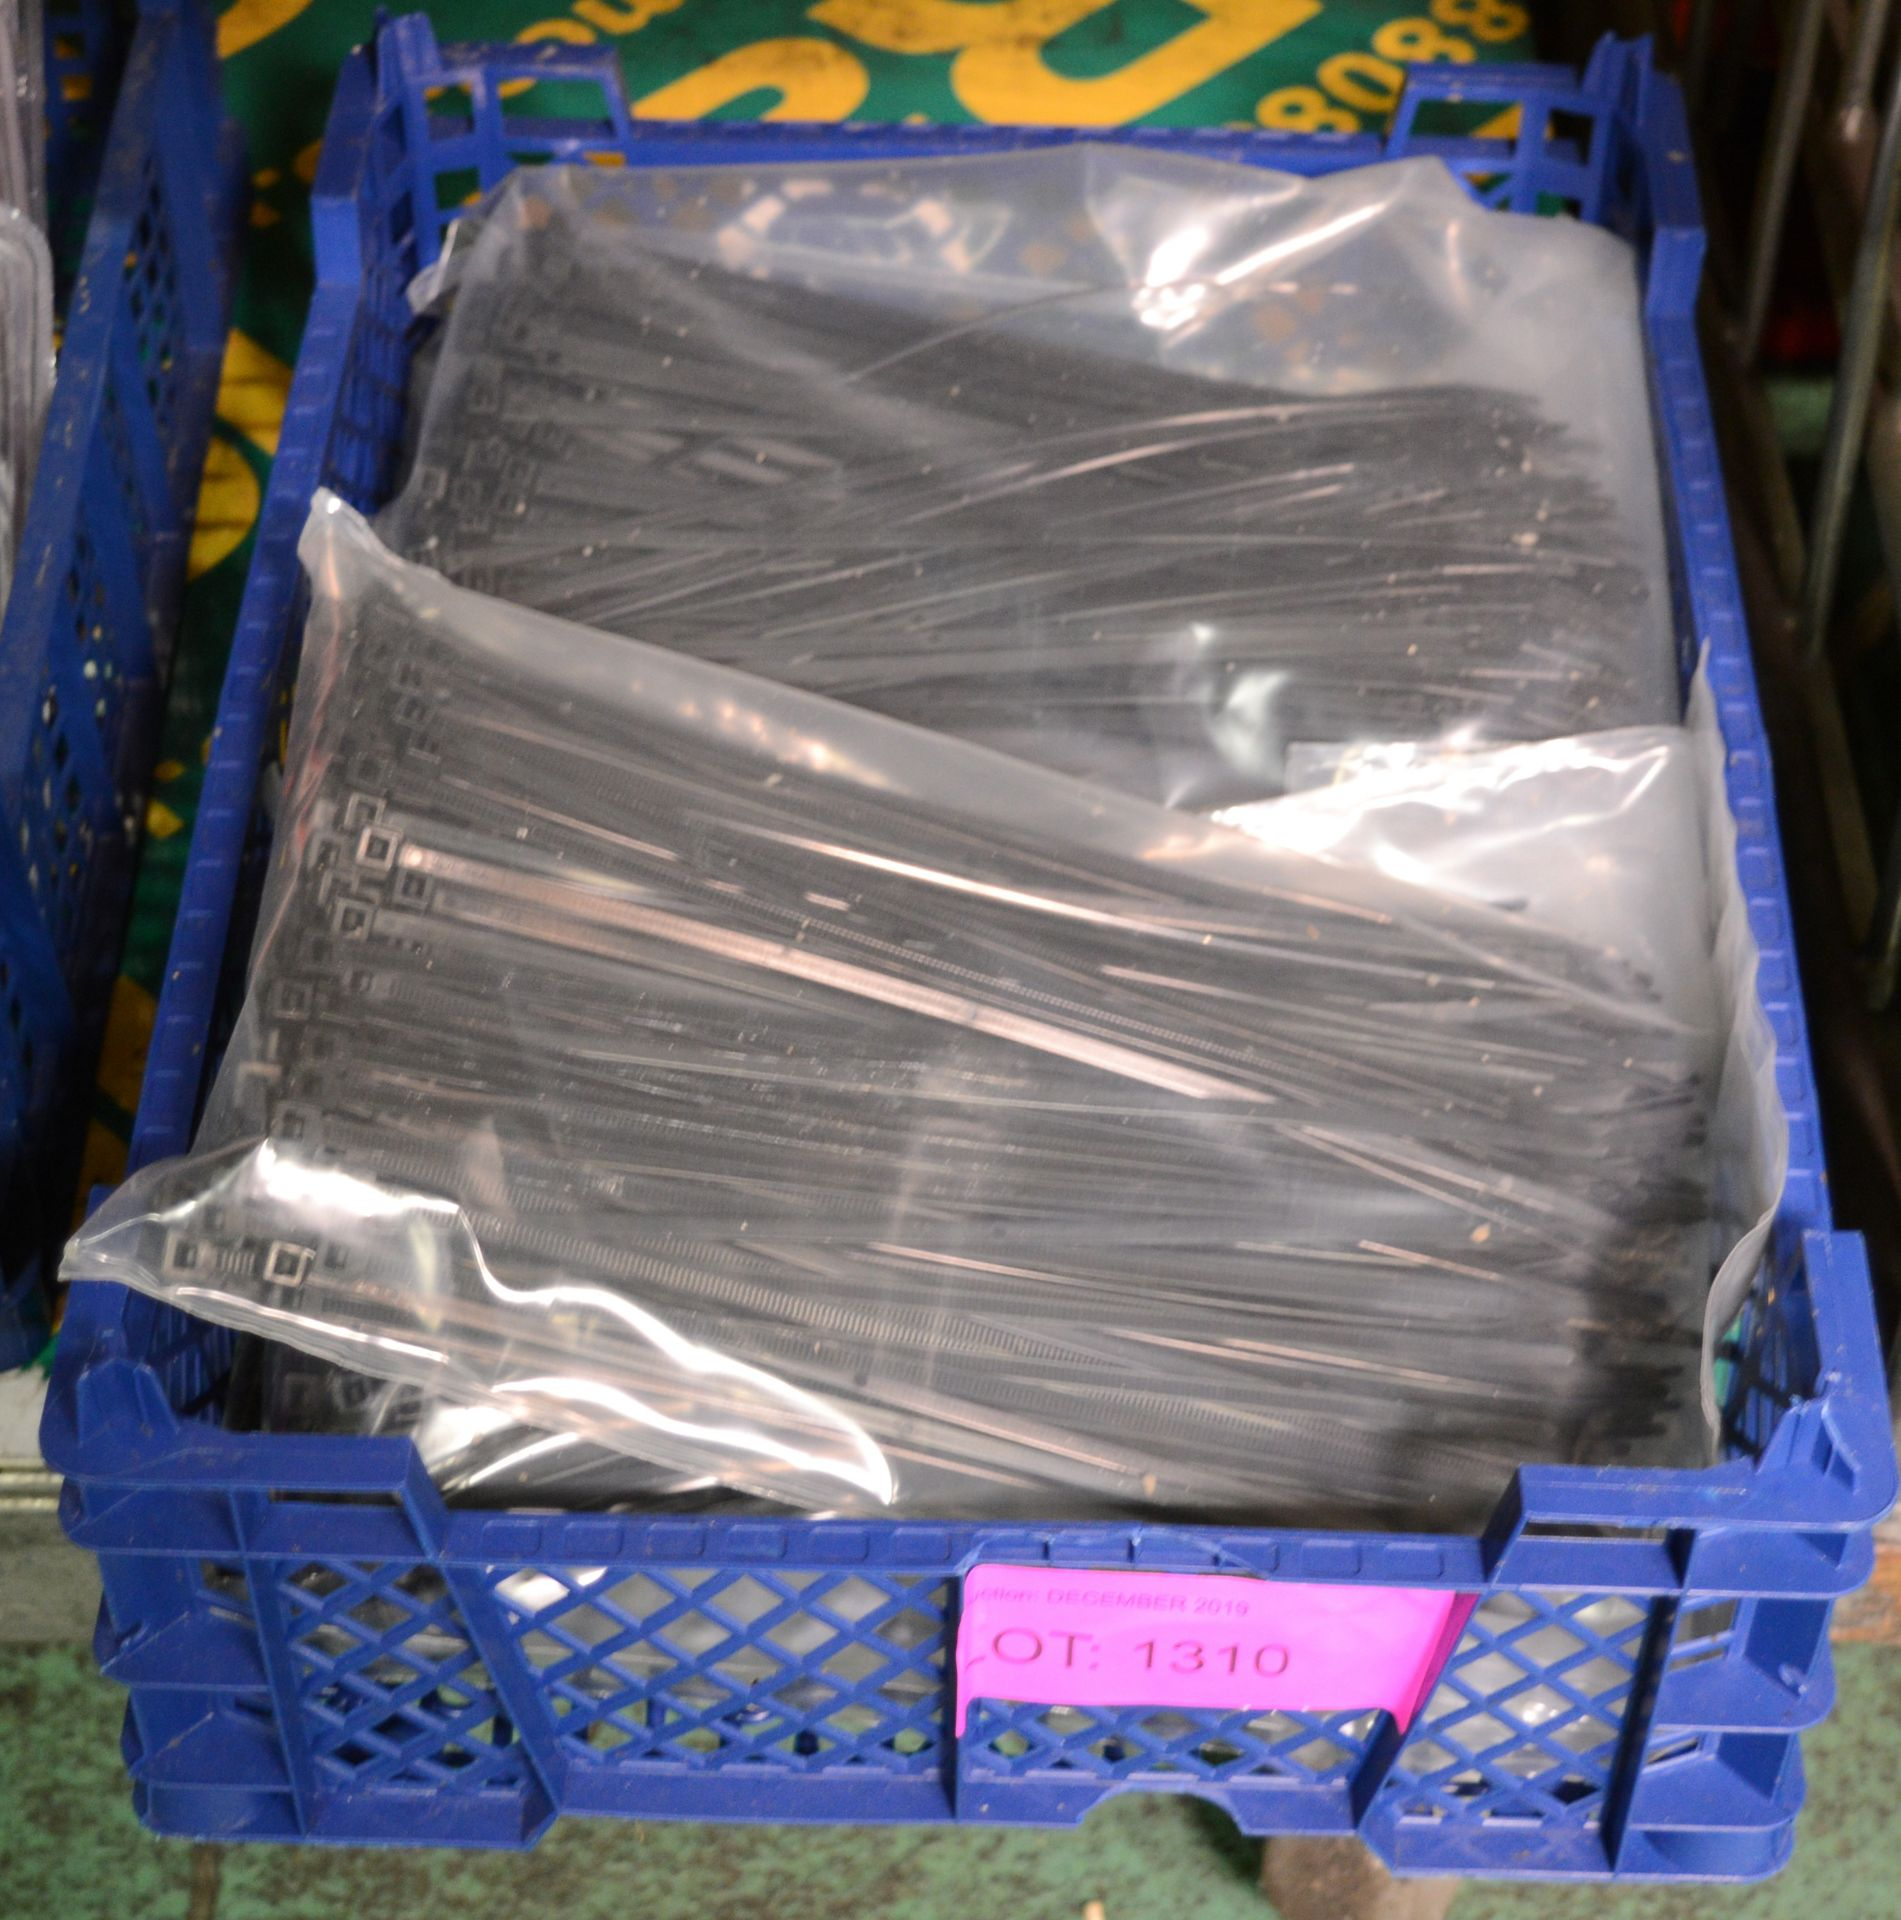 Lot 1310 - 1000x Cable Ties - Type 1.